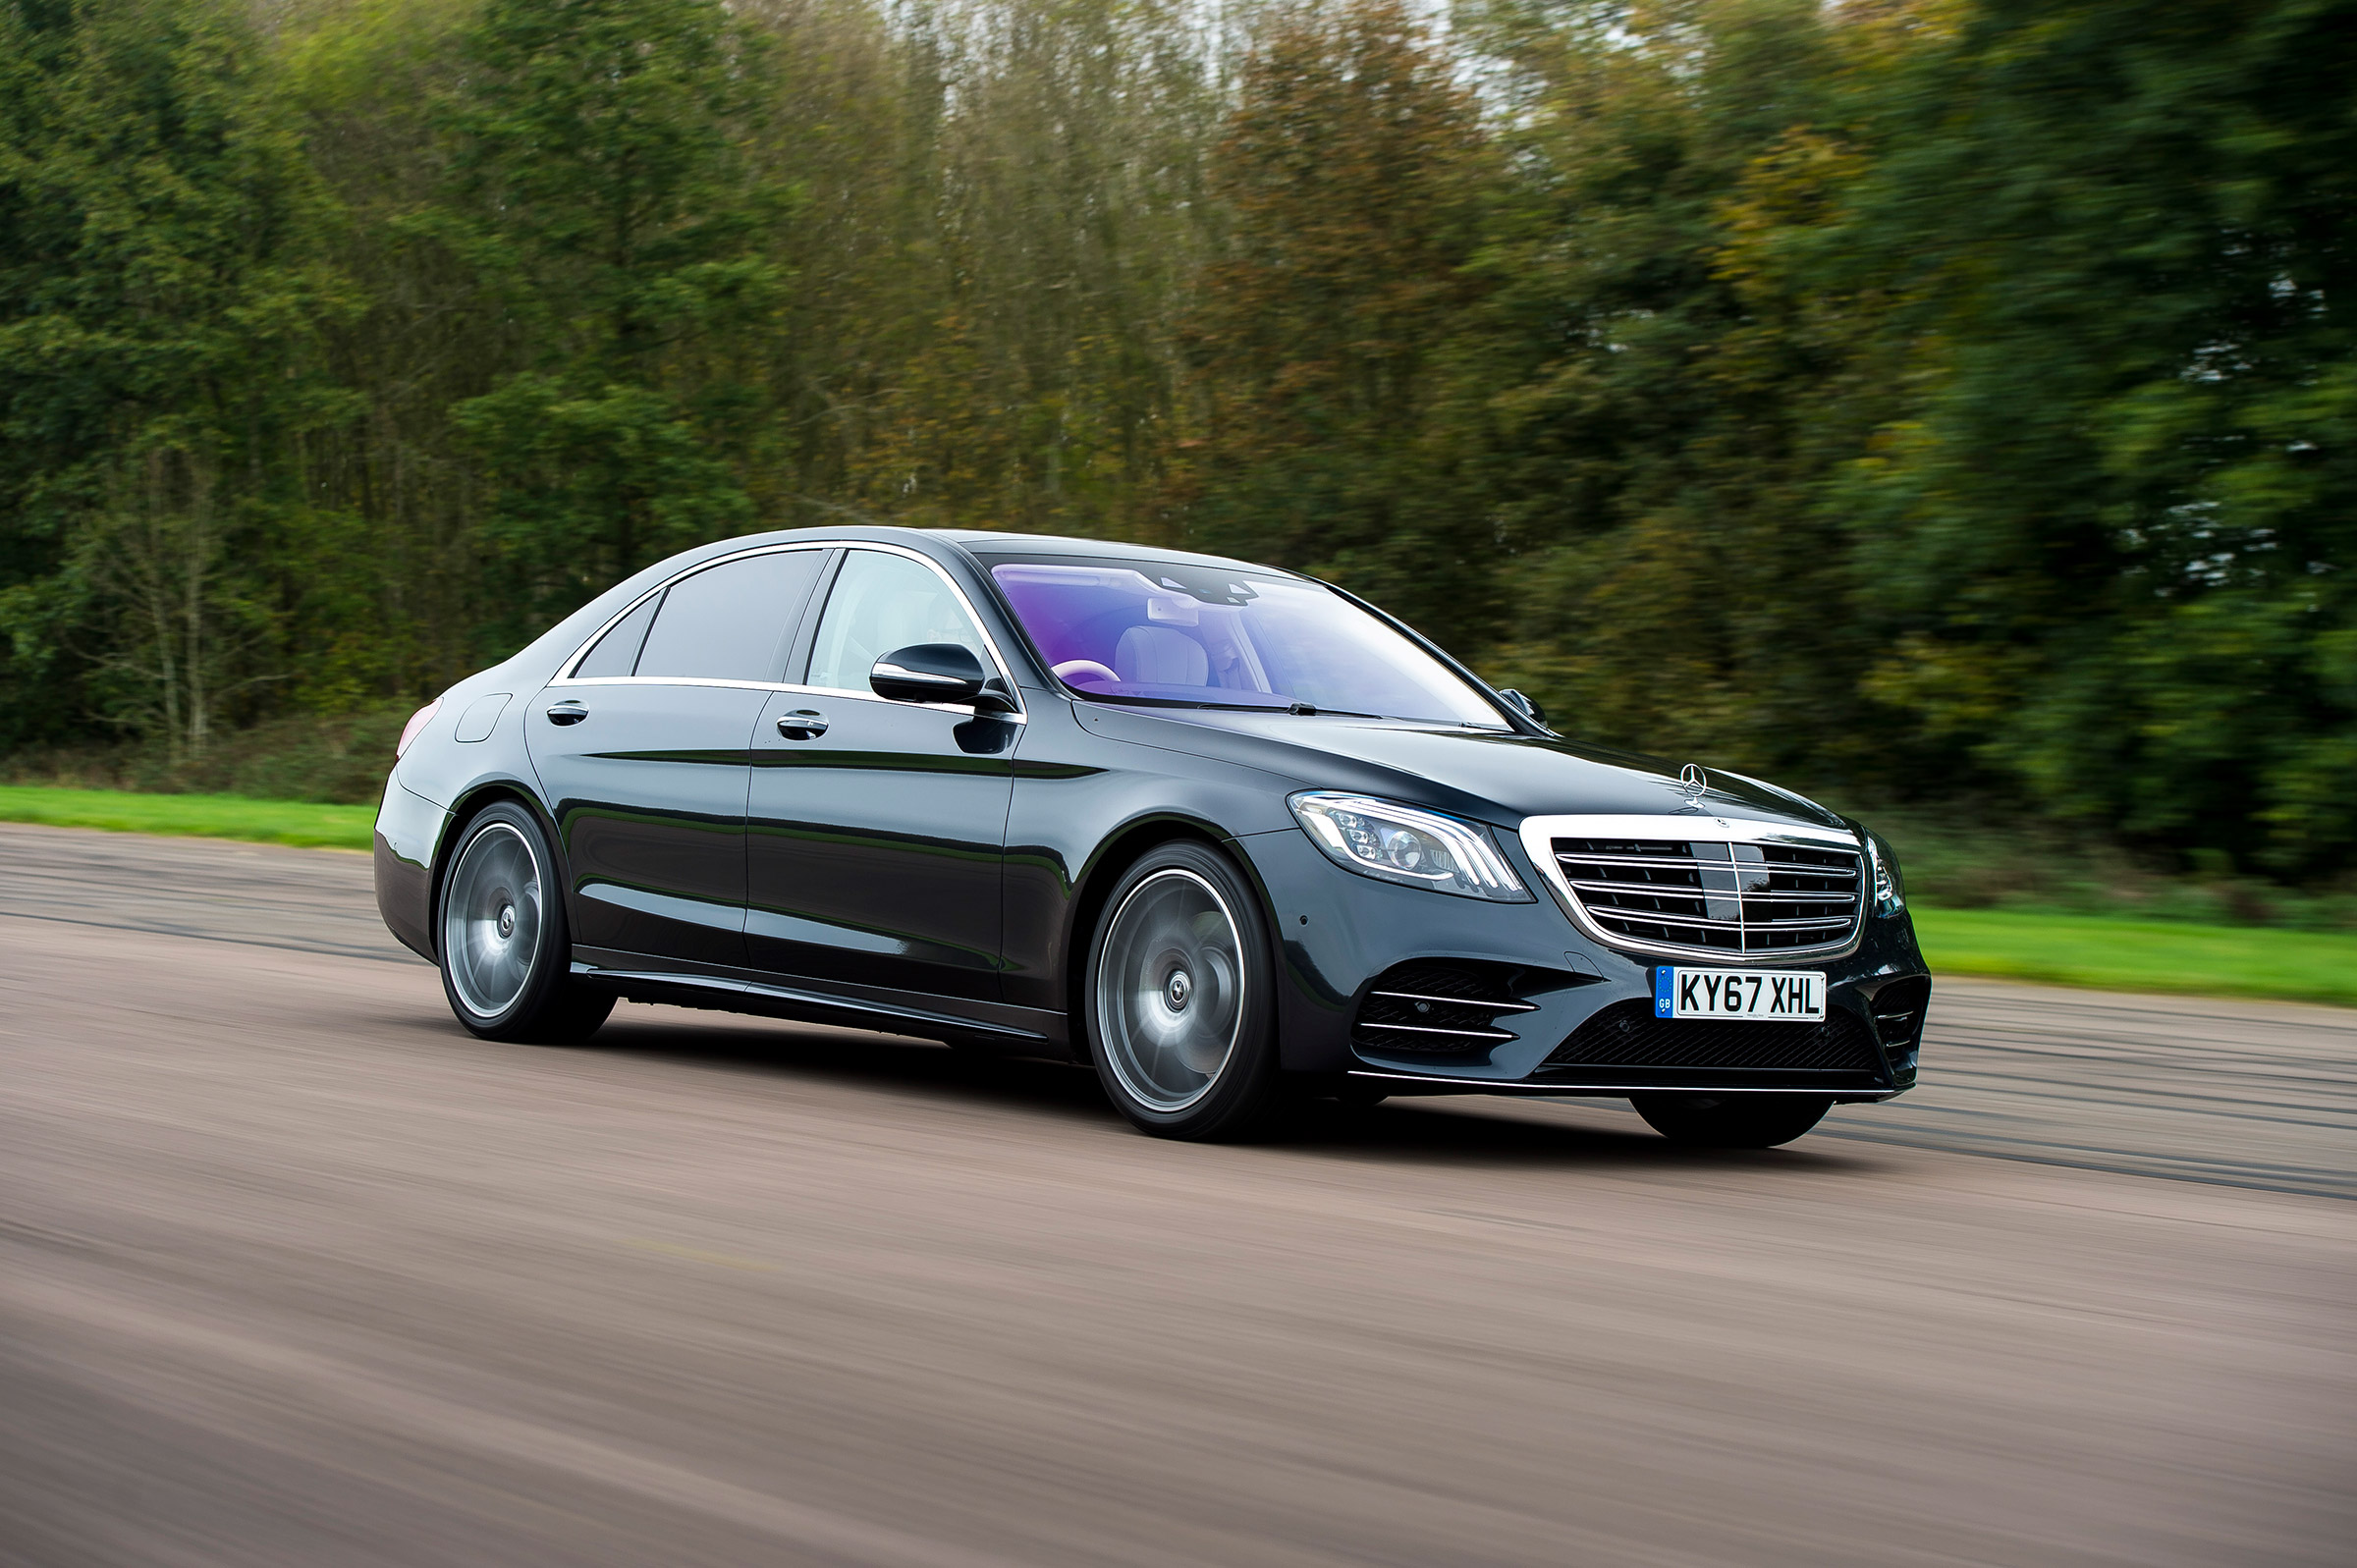 Mercedes S class - Top selling executive sedans and saloons